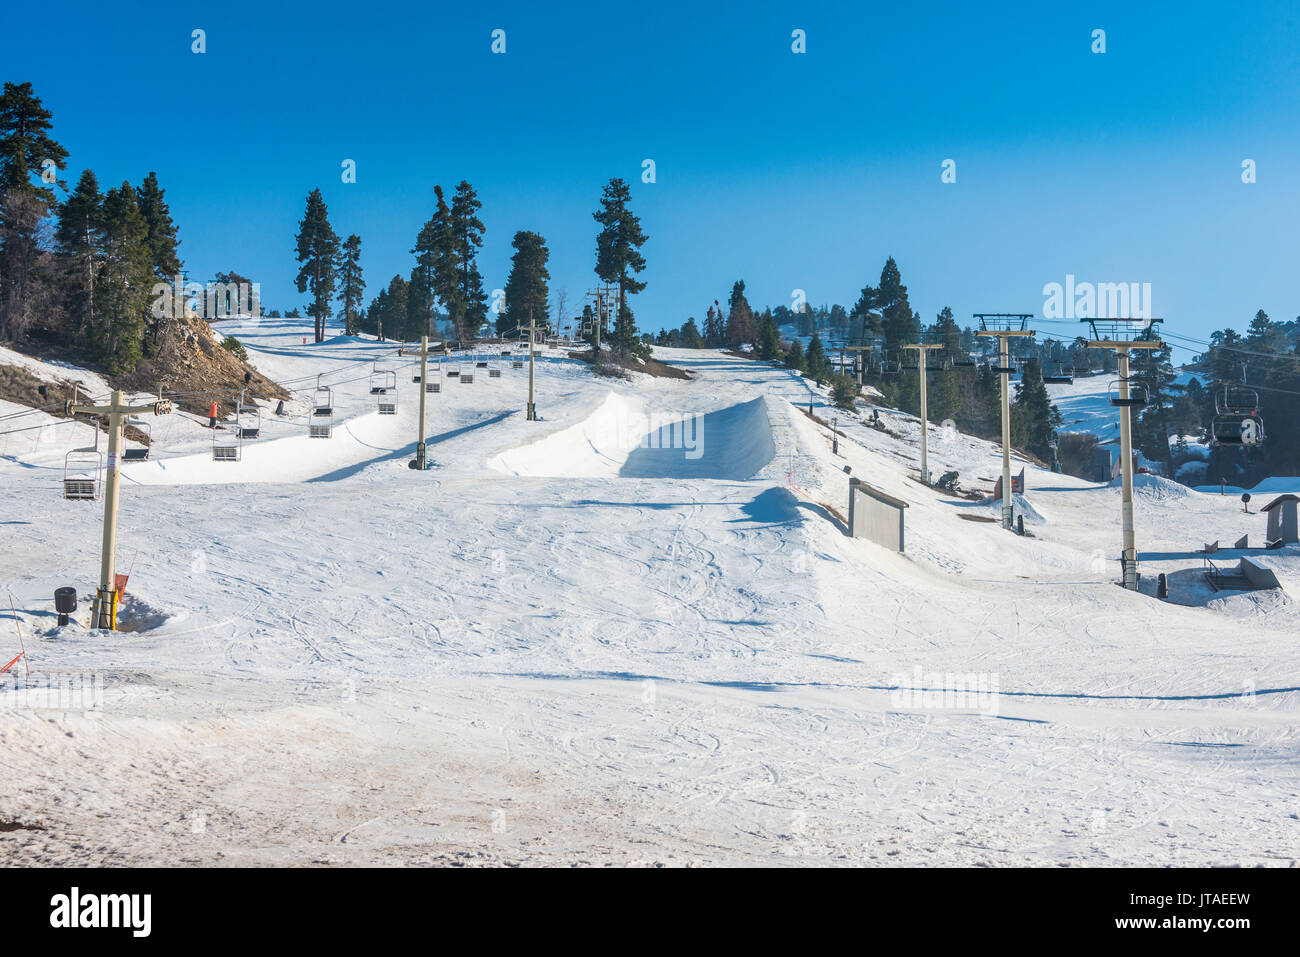 Ski resort of Big Bear in spring, San Bernadino Mountains, California, United States of America, North America - Stock Image